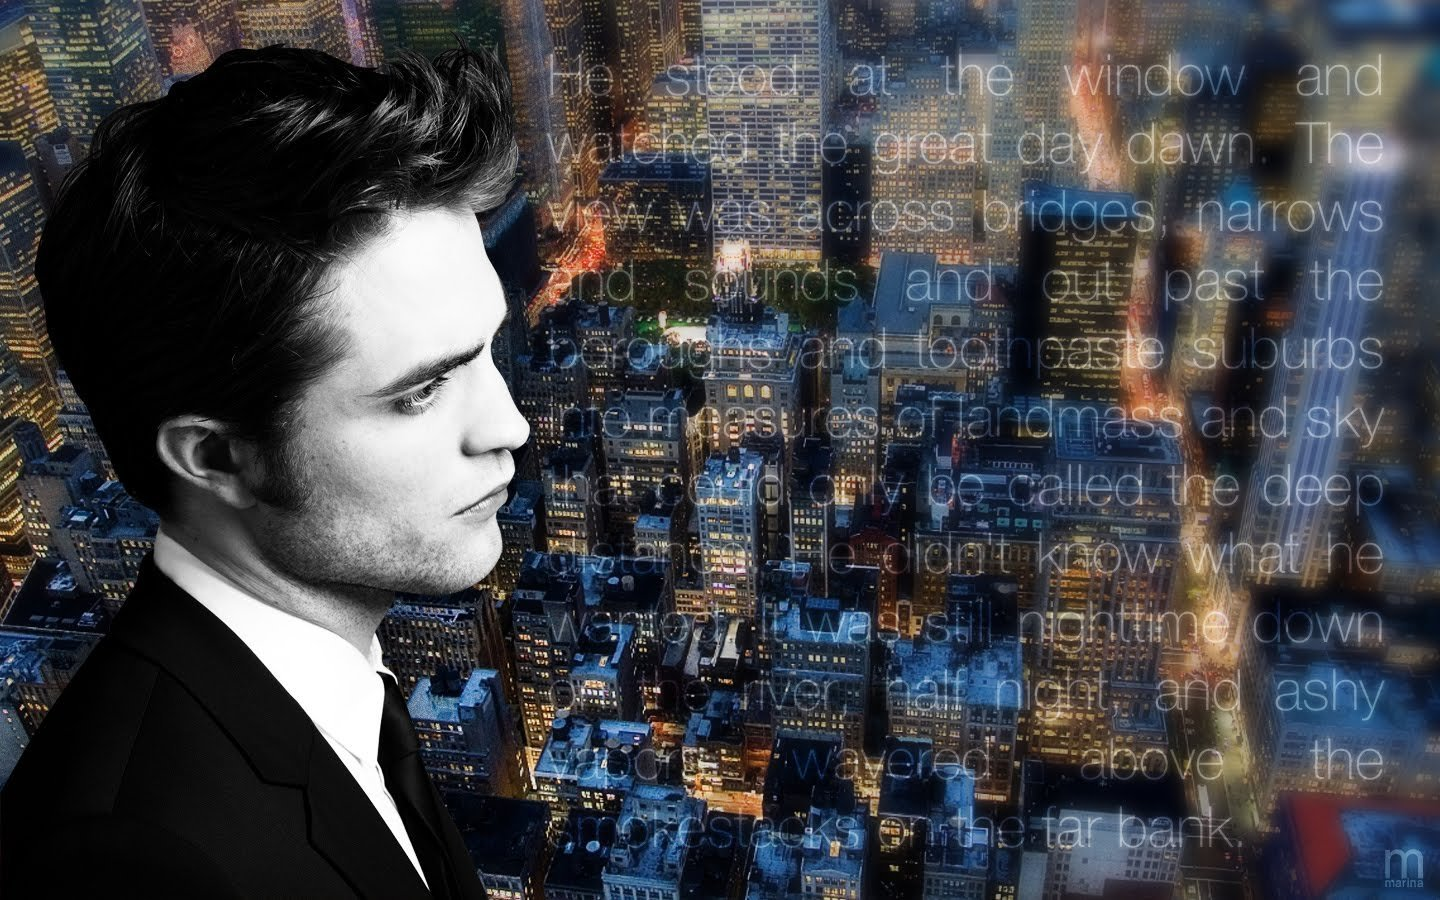 Robert pattinson - Robert Pattinson